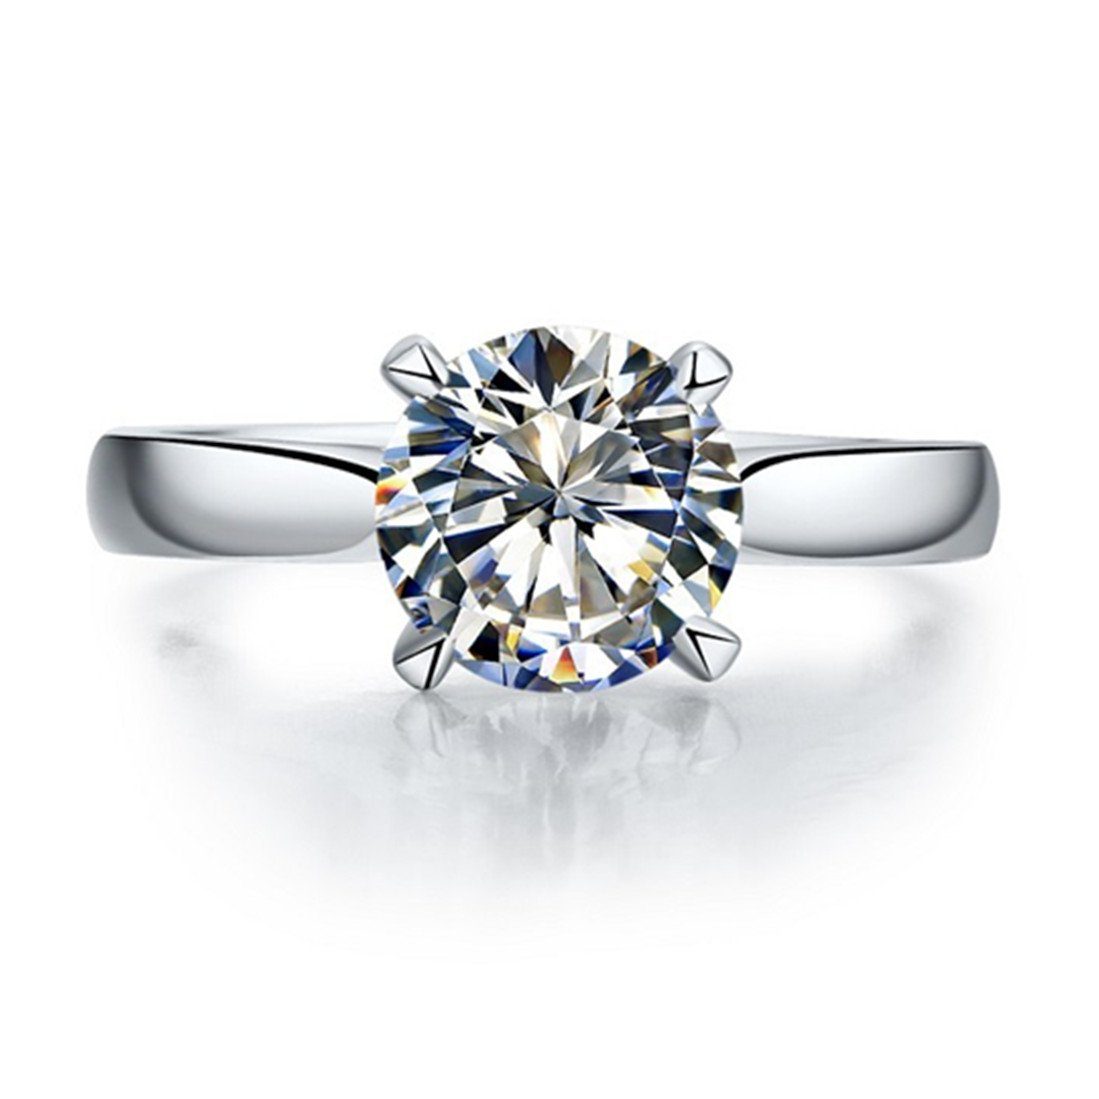 Sterling Silver 2CT NSCD Simulated Diamond Solitaire Prongs Brand Ring Engagement for Women